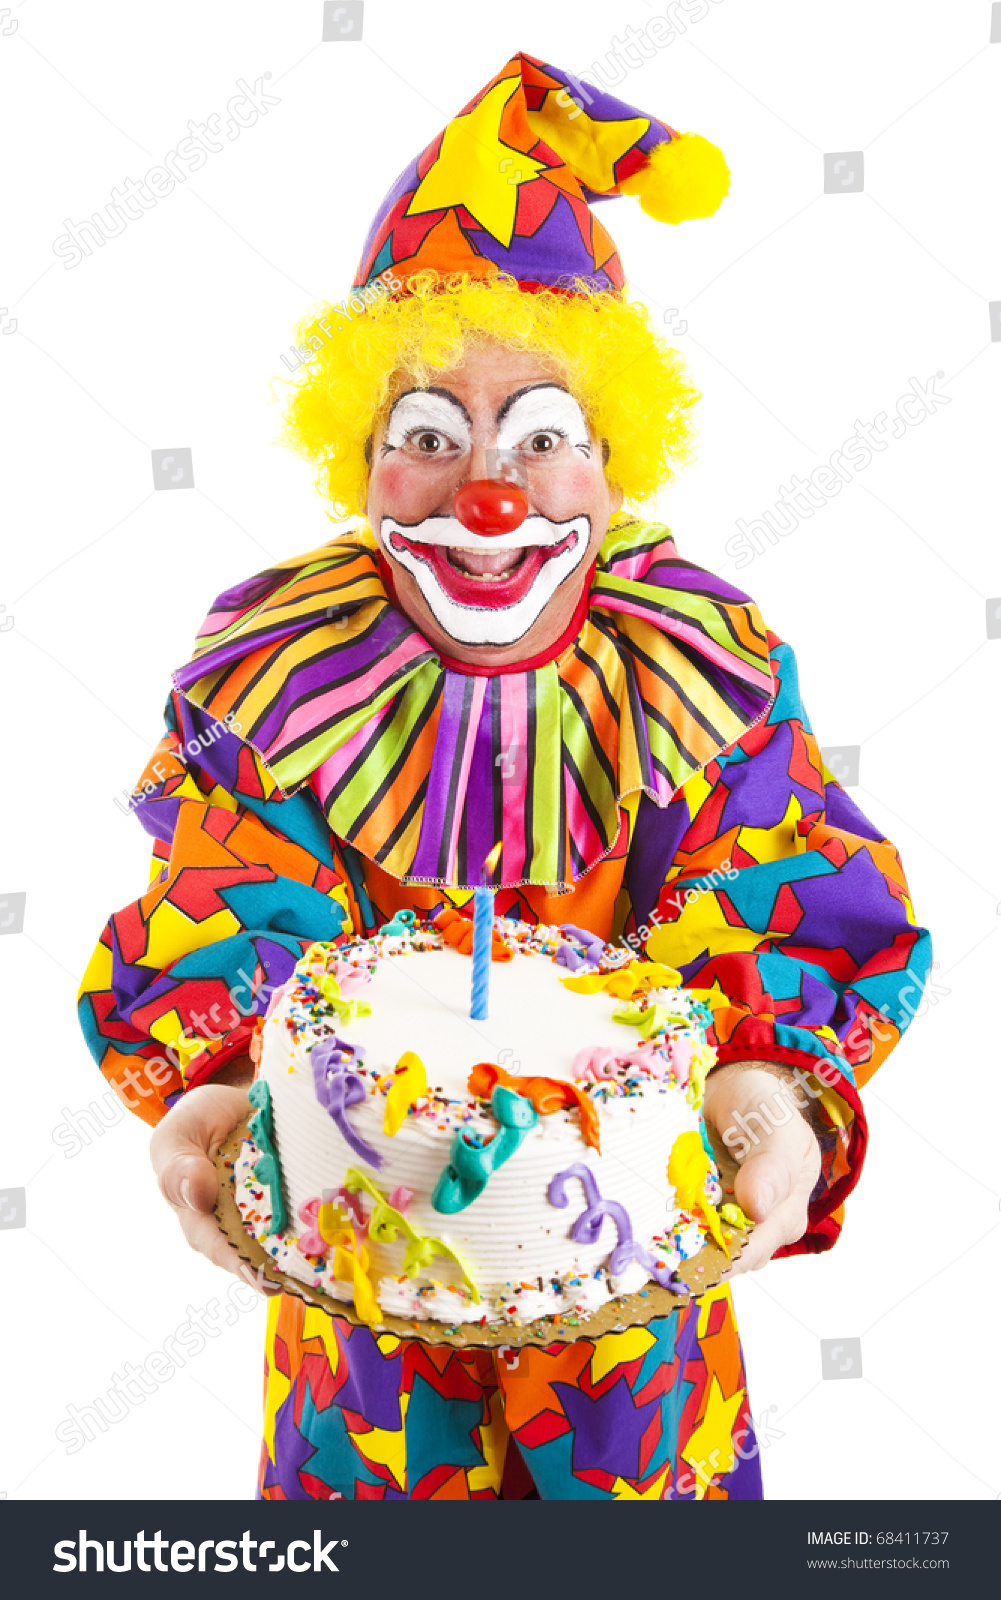 Colorful Clown Holding Birthday Cake Isolated Stock Photo Download